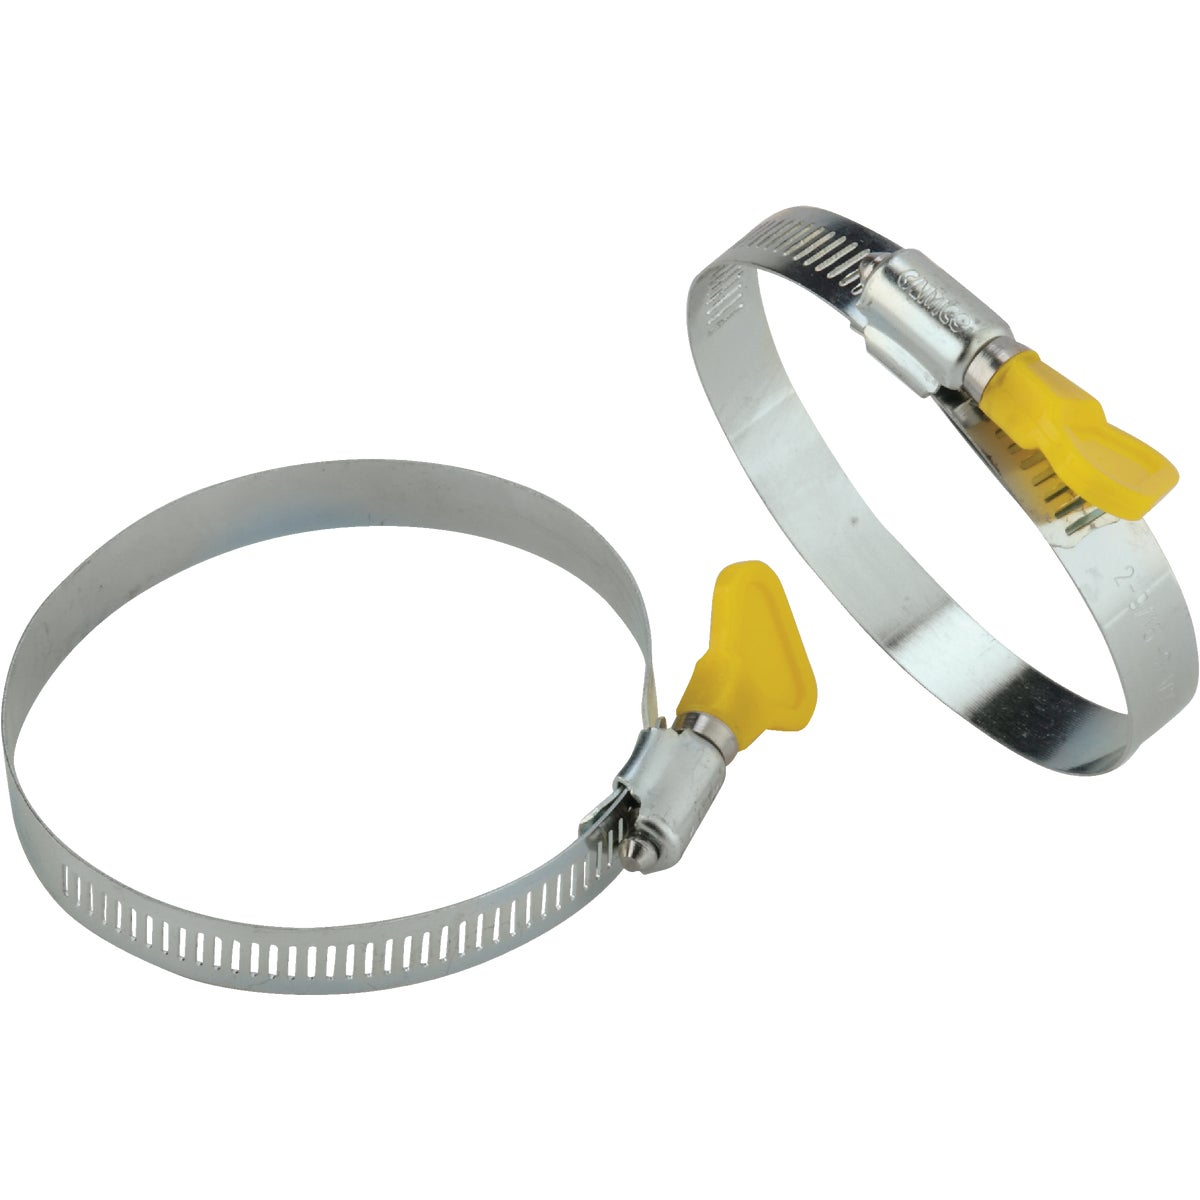 2PK RV SEWER HOSE CLAMPS - 39553 by Camco Mfg.